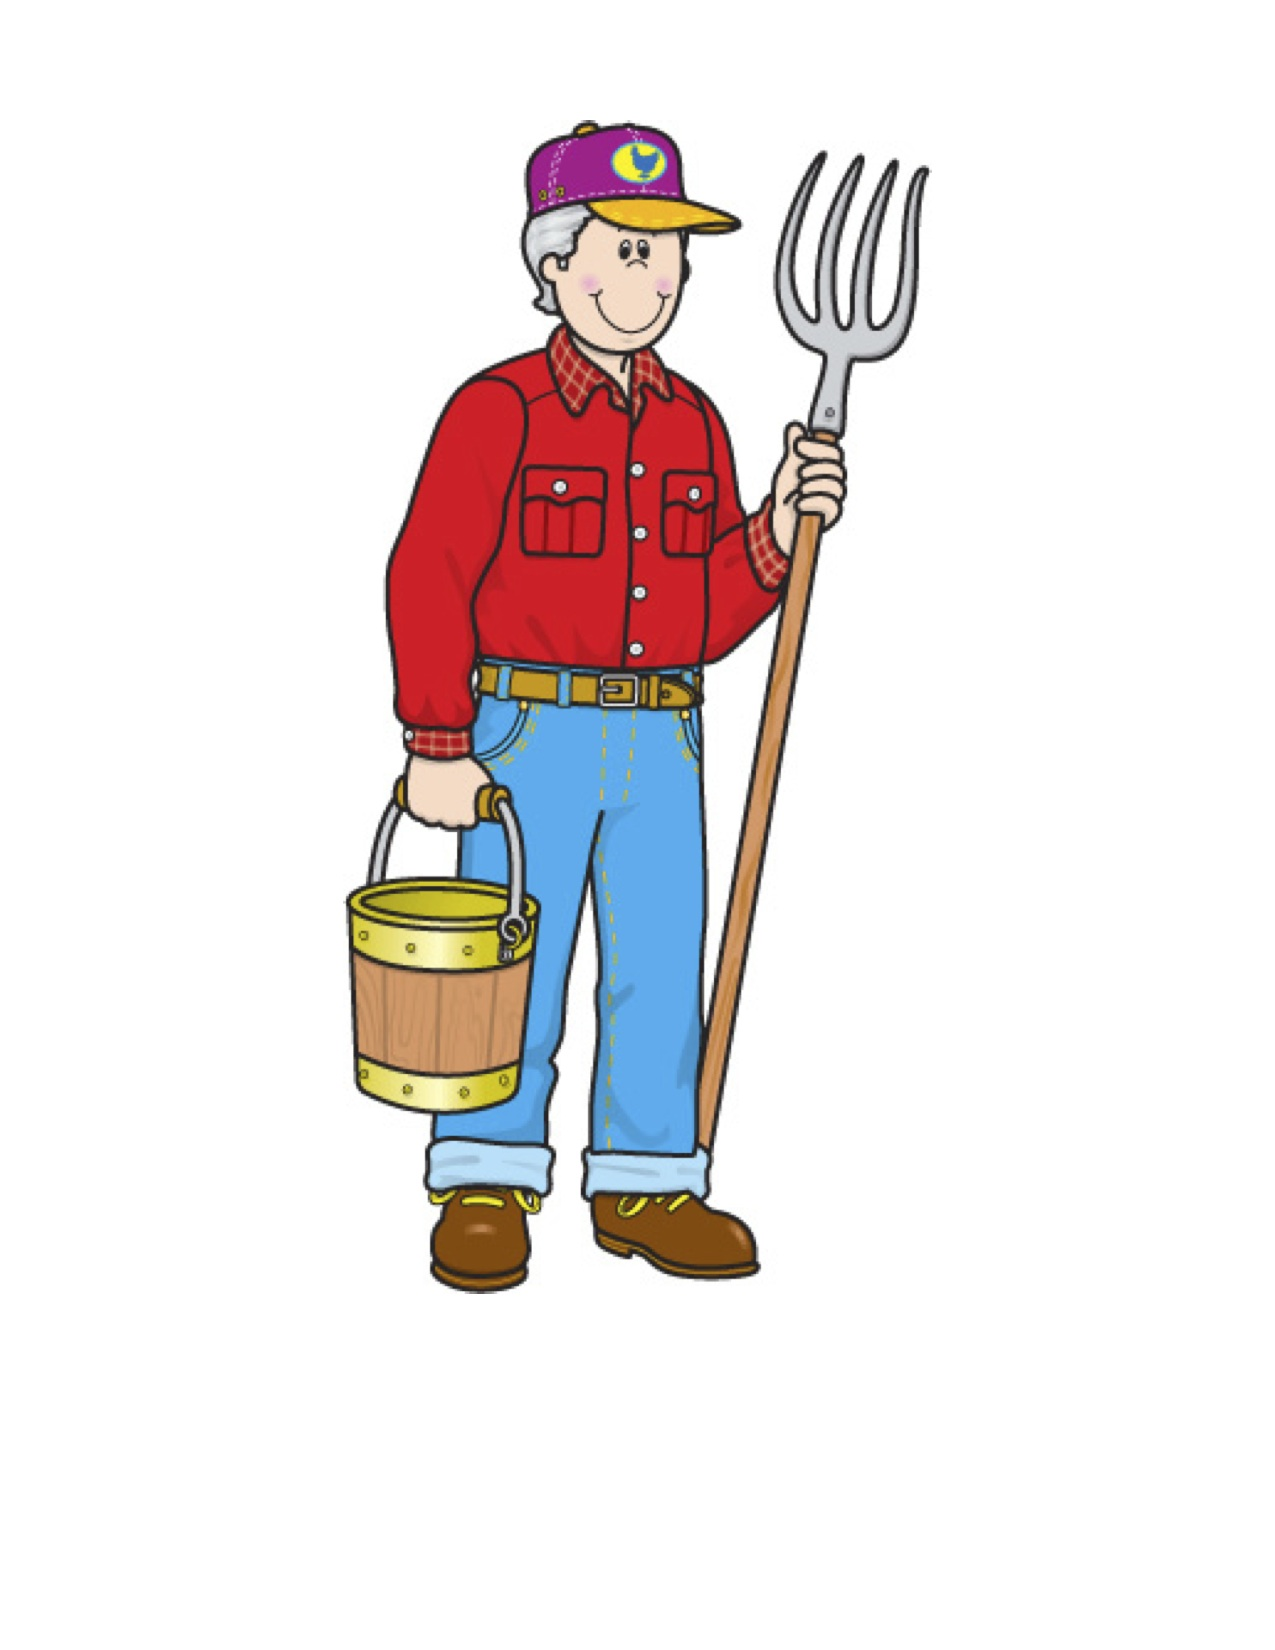 Farmers clipart worried. Gingerbread man at getdrawings